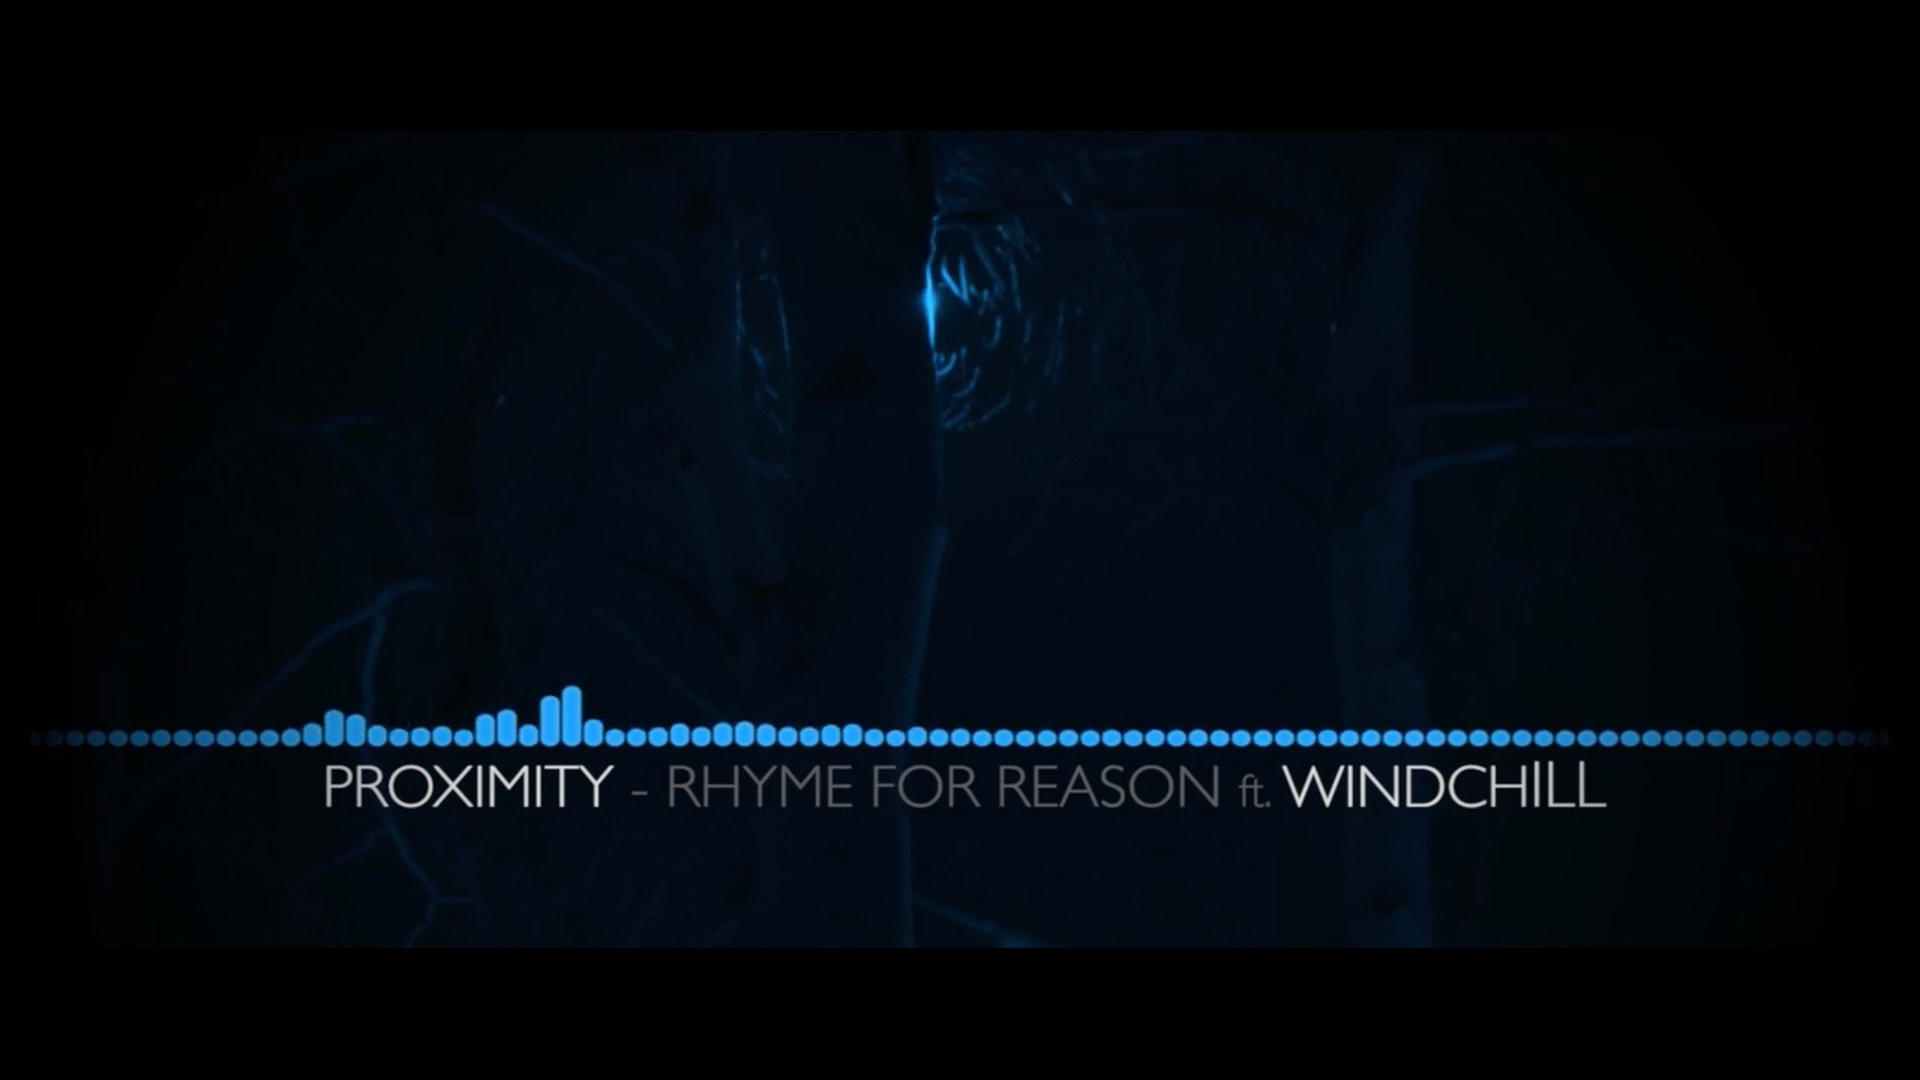 Rhyme for Reason by Proximity League - Hip Hop Music Video